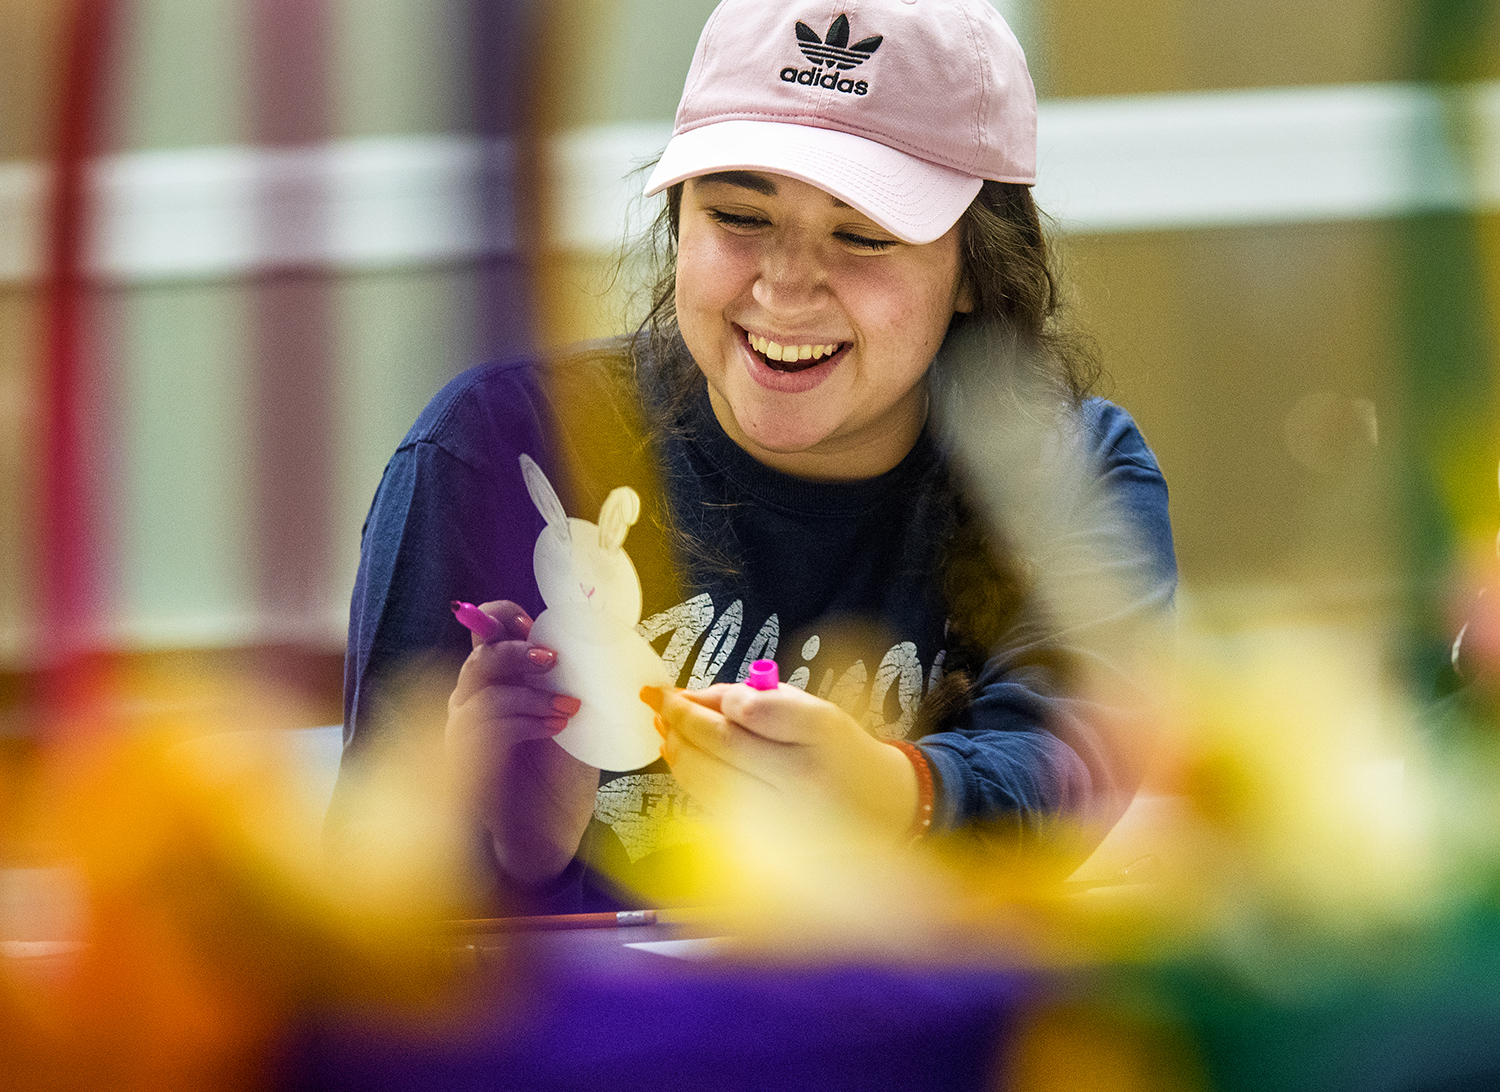 Karen Contreras laughs as she makes a bunny finger puppet at the Student Union at the University of Illinois Springfield Thursday, March 22, 2018. Contreras joined other students to cut, glue and decorate paper crafts to fill 40 Easter baskets. After candy is added, the baskets will be delivered for distribution to patients at HSHS St. John's Children's Hospital. [Ted Schurter/The State Journal-Register]